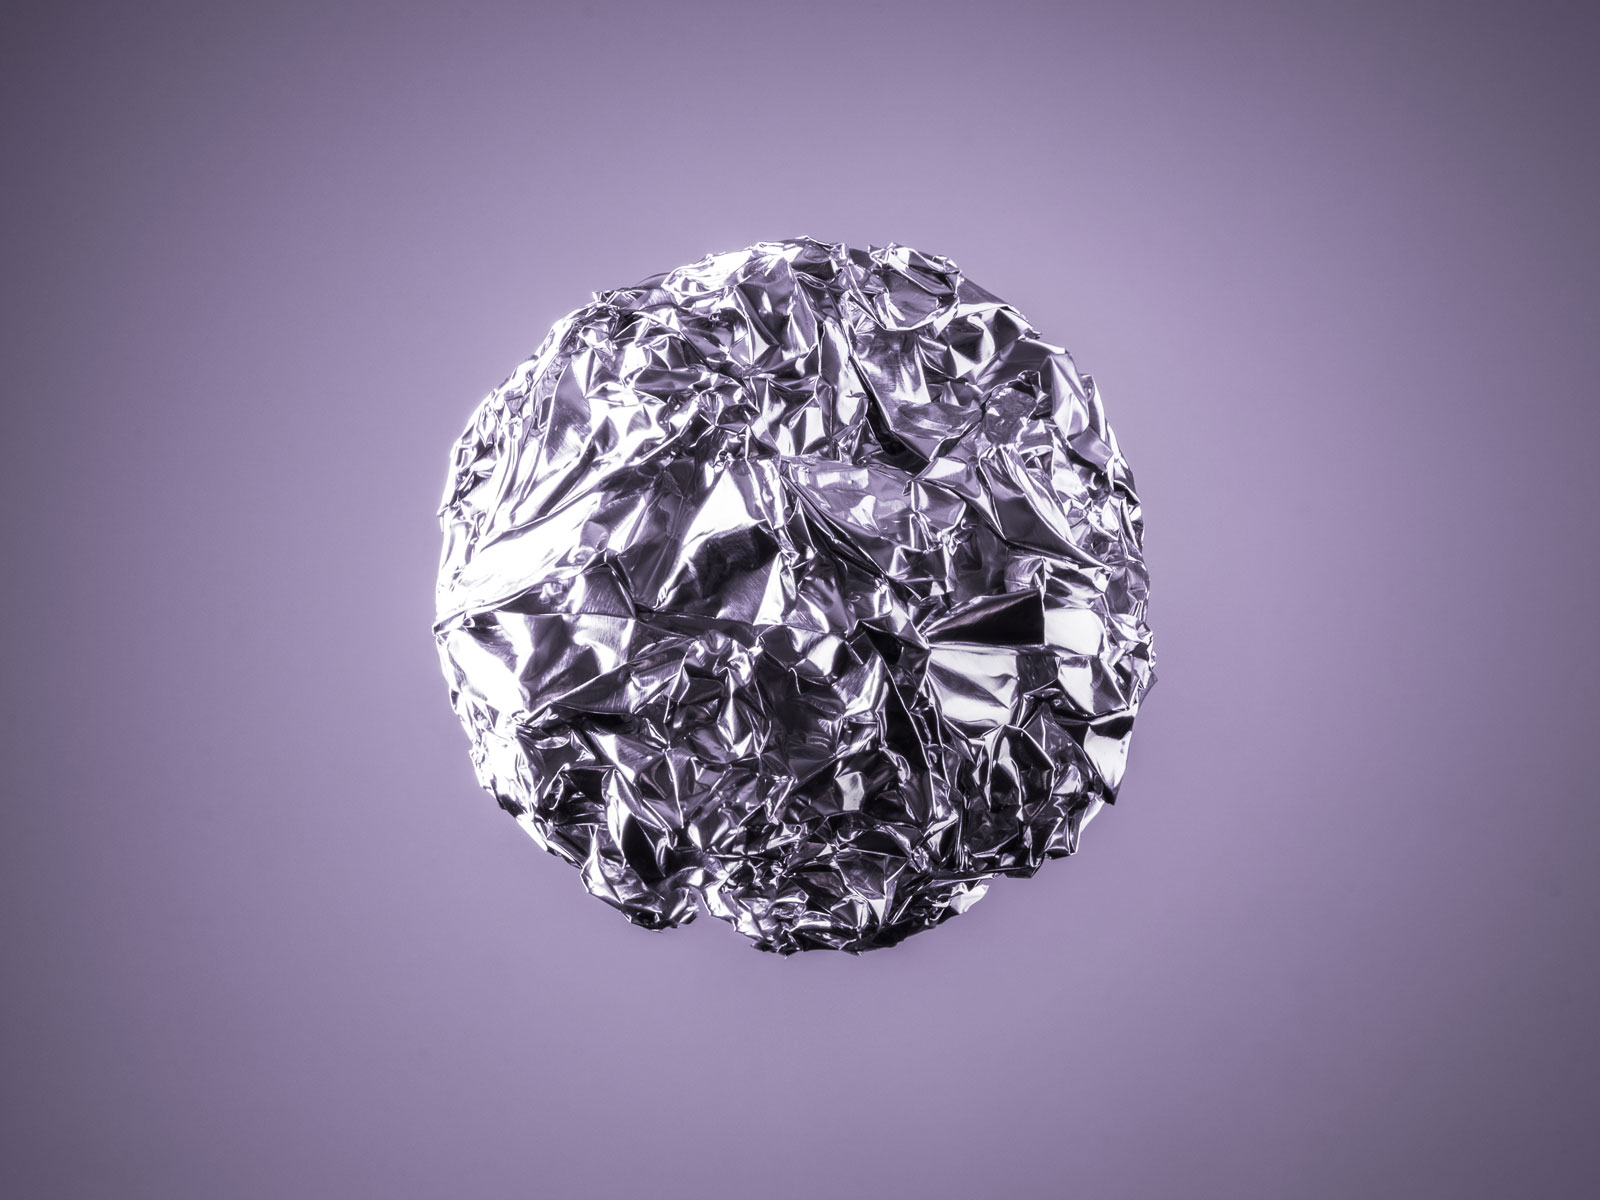 Polished Aluminum Foil Balls and More Entertaining Finds on the Internet This Week